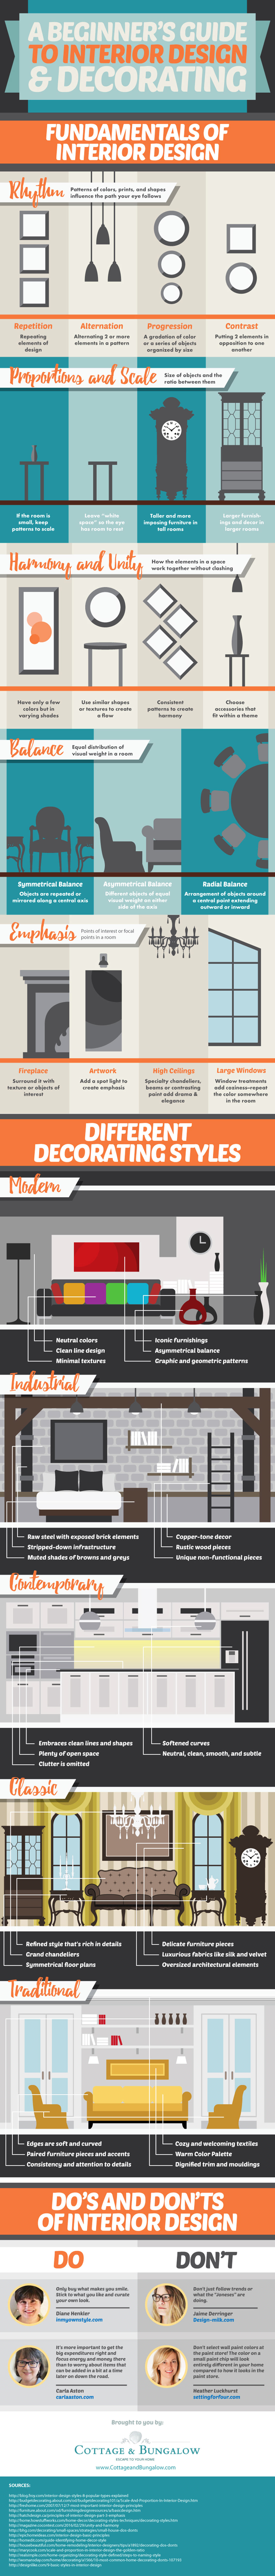 Interior Design and Decorating for Beginners Infographic